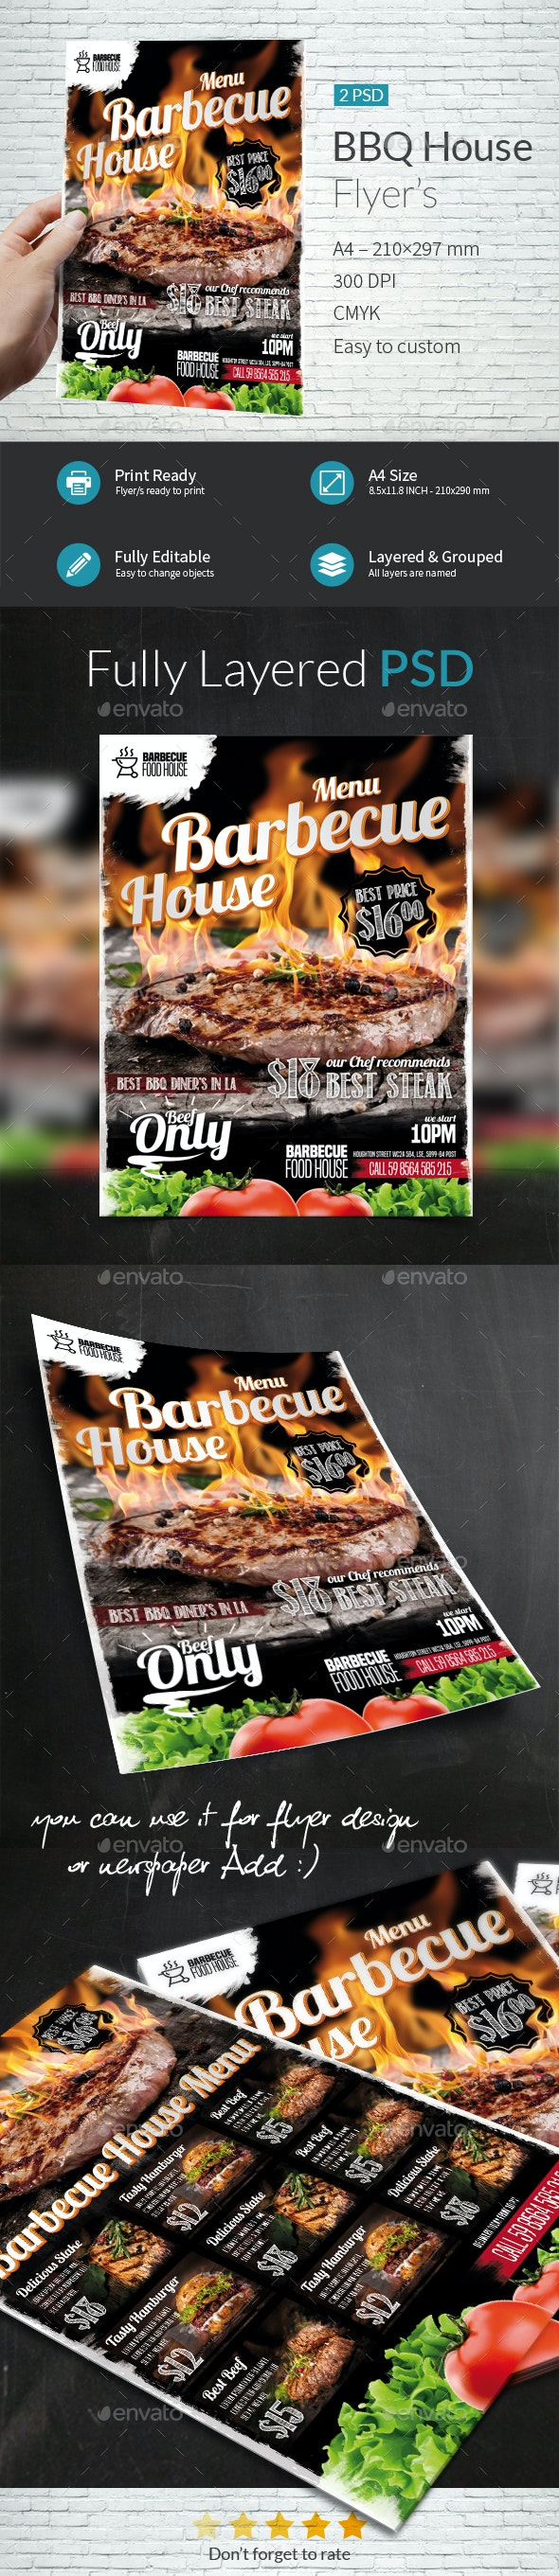 BBQ House Menu A4 Flyer Template - Flyers Print Templates